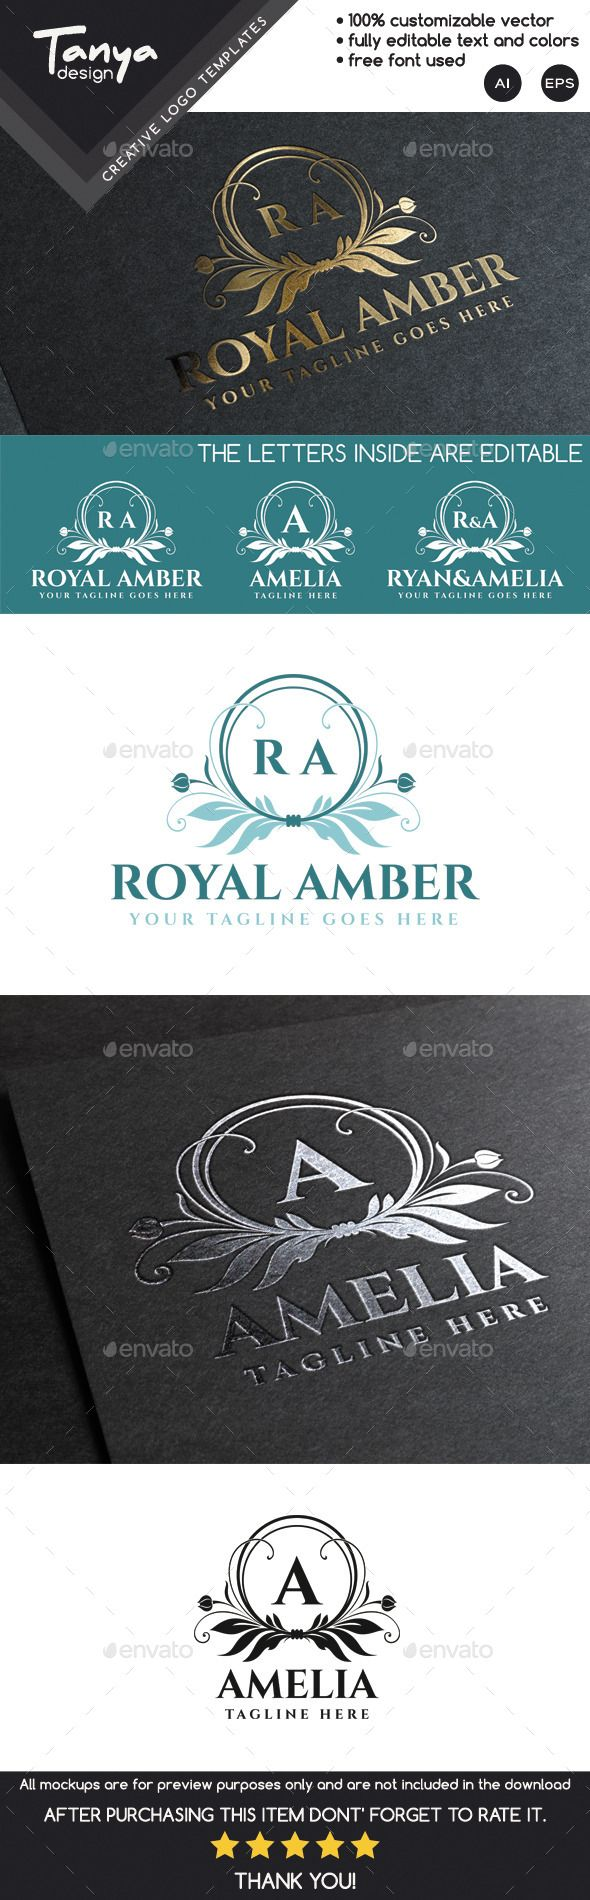 Royal Amber Logo Template — Vector EPS #feminine #spa • Available here → https://graphicriver.net/item/royal-amber-logo-template/9951239?ref=pxcr